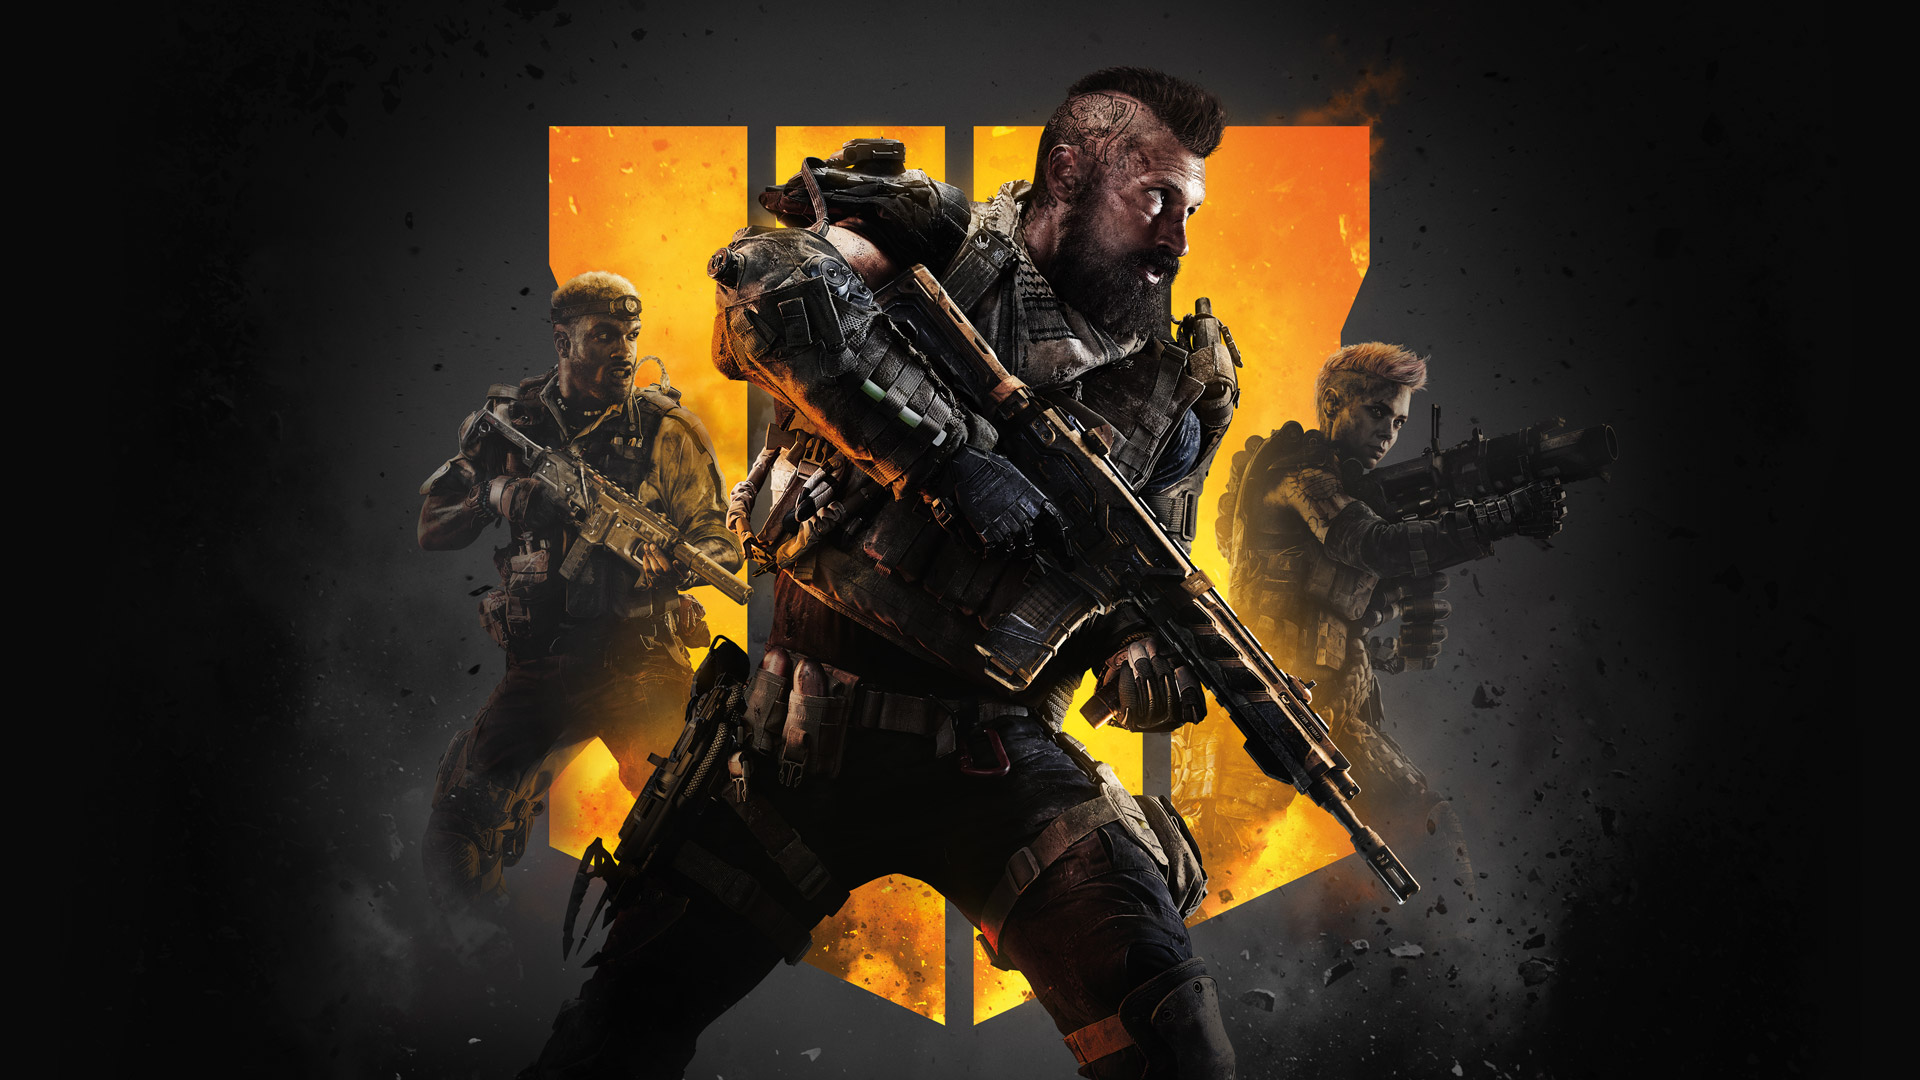 Call of Duty: Black Ops 4 Wallpaper in 1920x1080